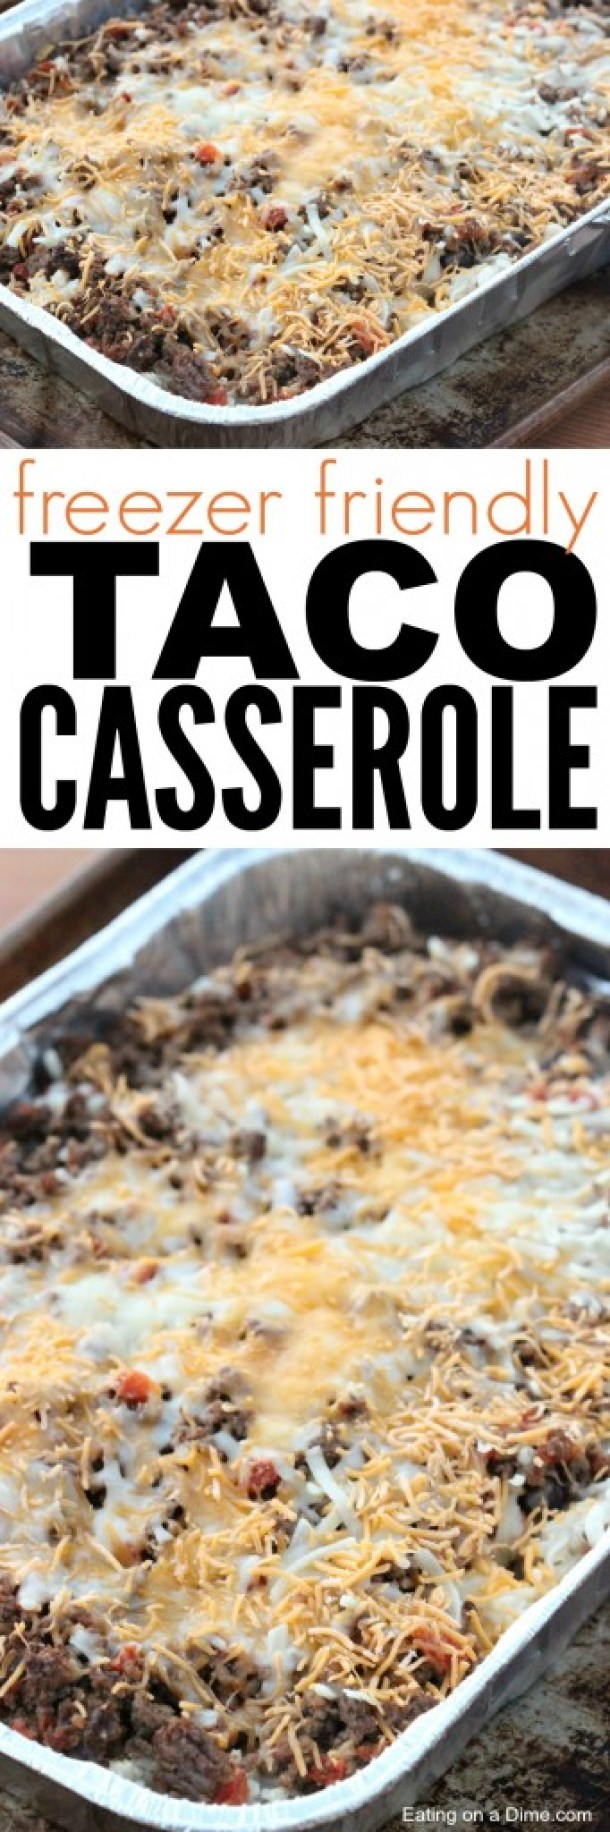 "Delicious and Easy Taco Casserole recipe that freezes well via Eating on a Dime ""This easy taco casserole recipe was a huge hit. My husband practically licks the pan clean when I make it."""